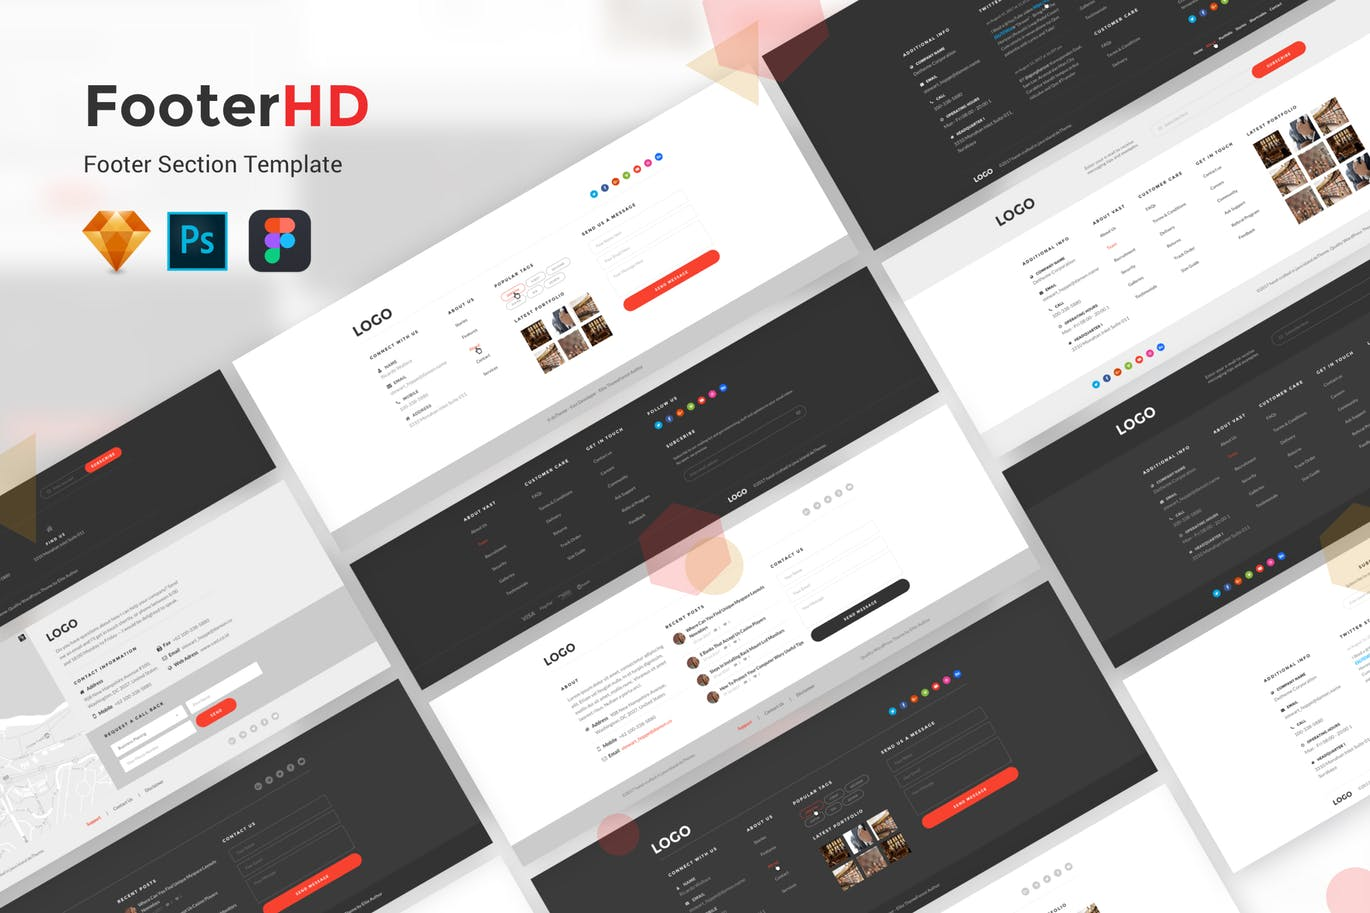 时尚高端多用途的高品质FooterHD 页脚UI KITS工具包 footerhd-footer-ui-kit-template